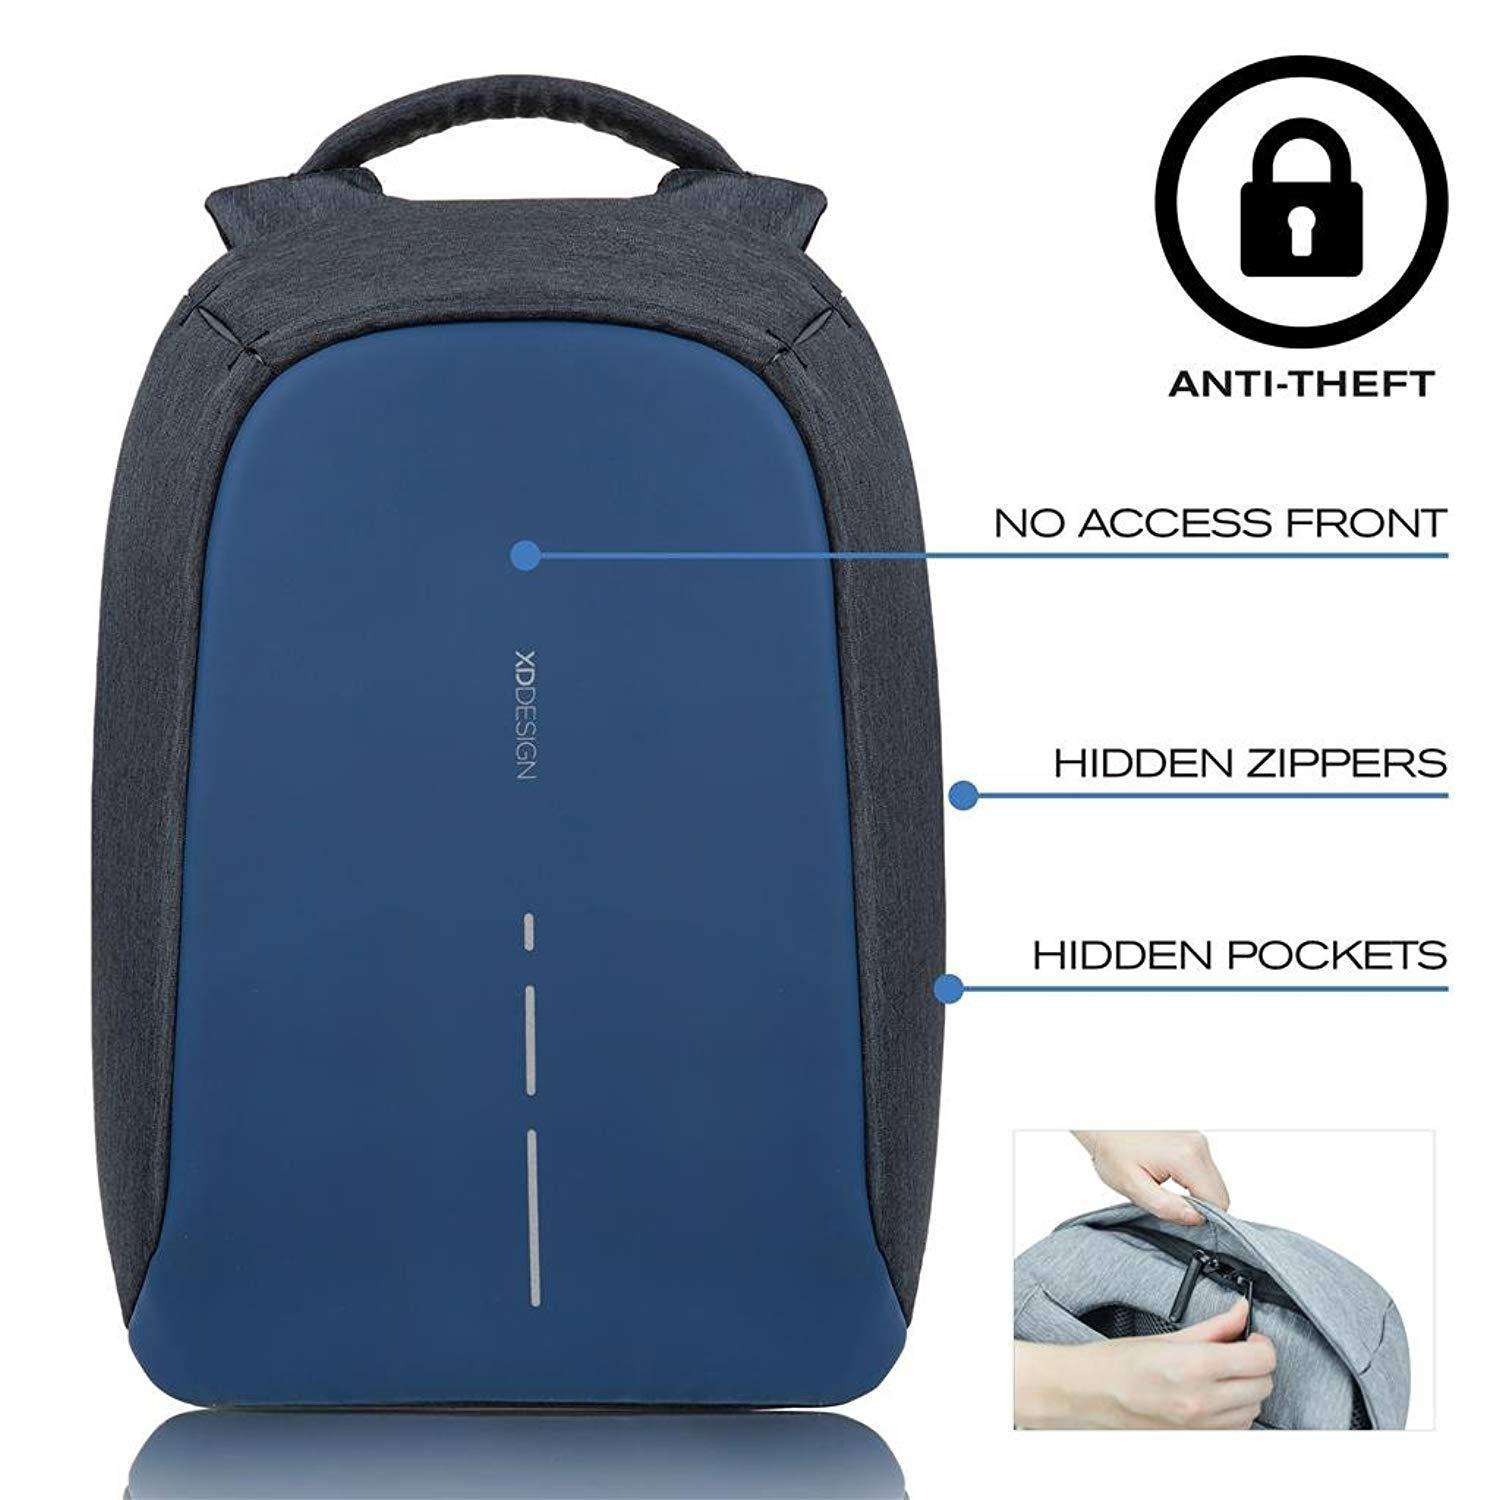 XD Design Bobby Compact Anti Theft Laptop Backpack Unisex Bag Accessories Umisfashion Store